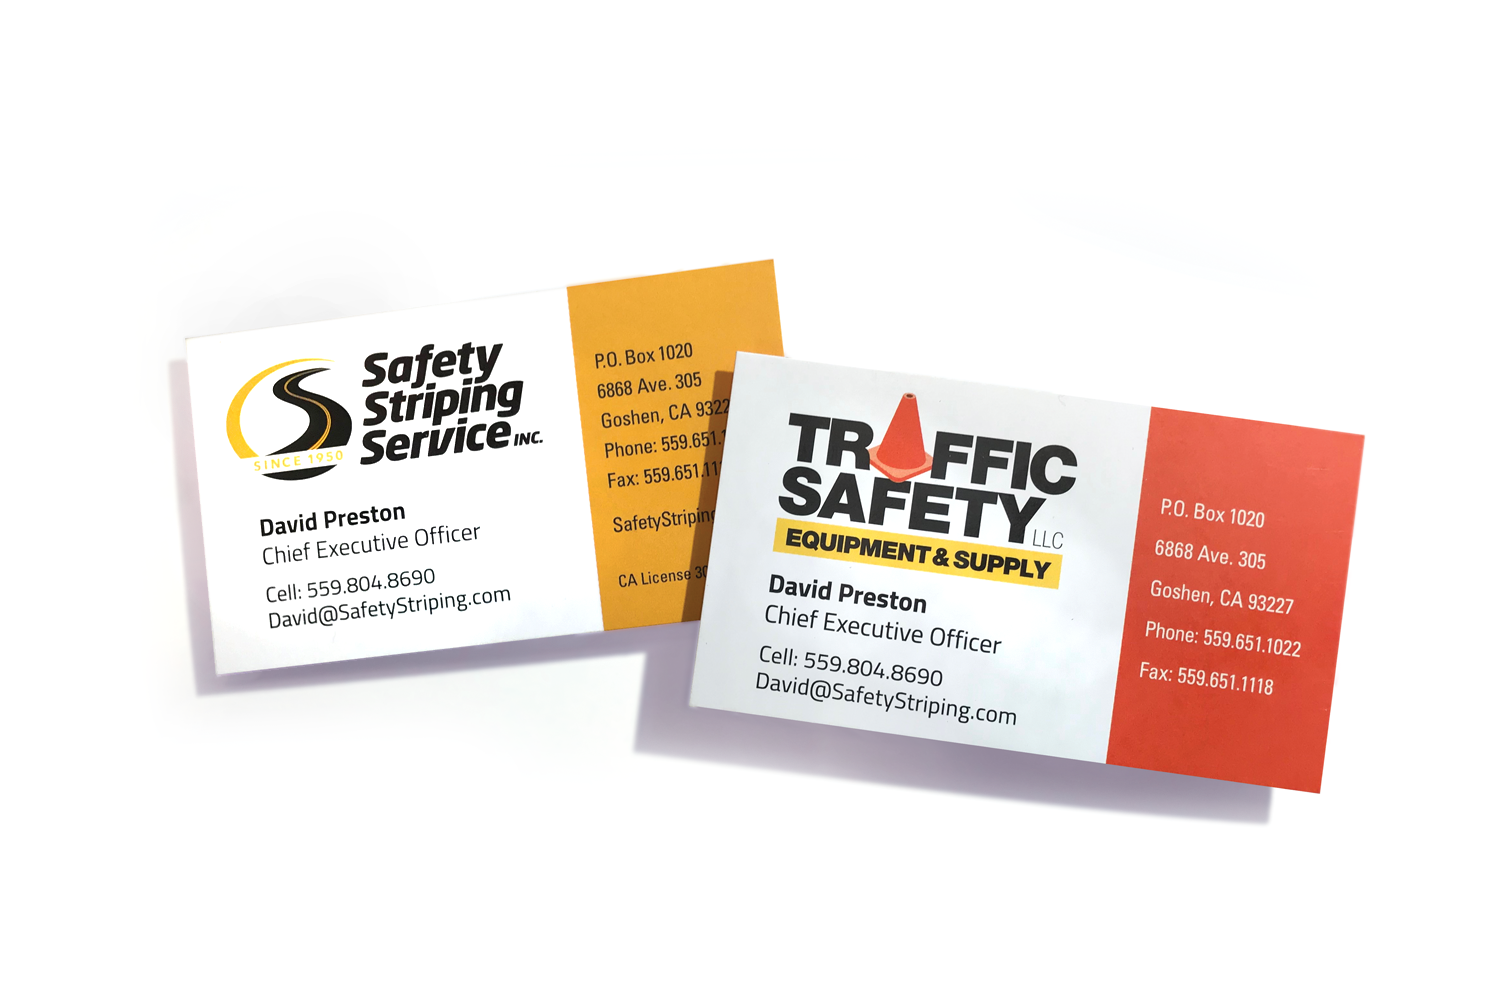 Safety Striping Service and Traffic Safety Equipment Supply business cards designed by DMI Agency_branding update and new website